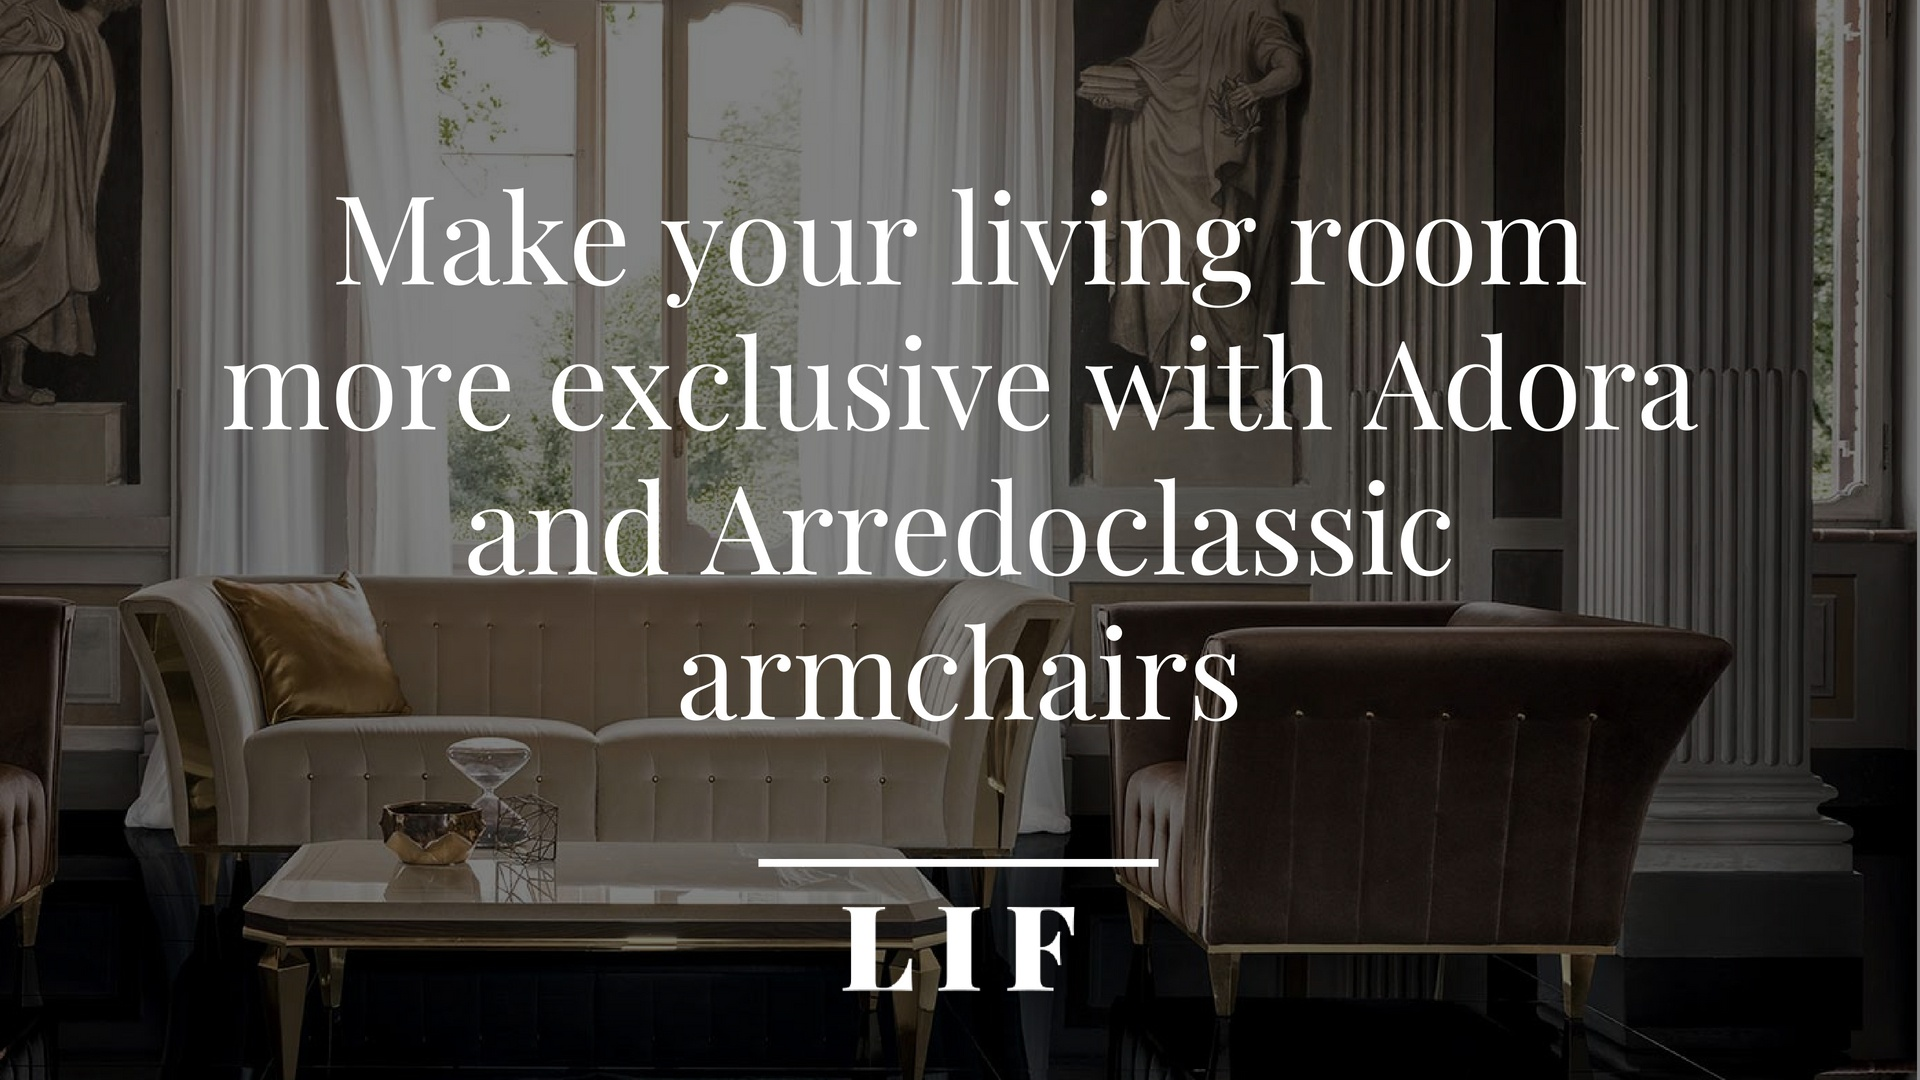 Make your living room more exclusive-Adora